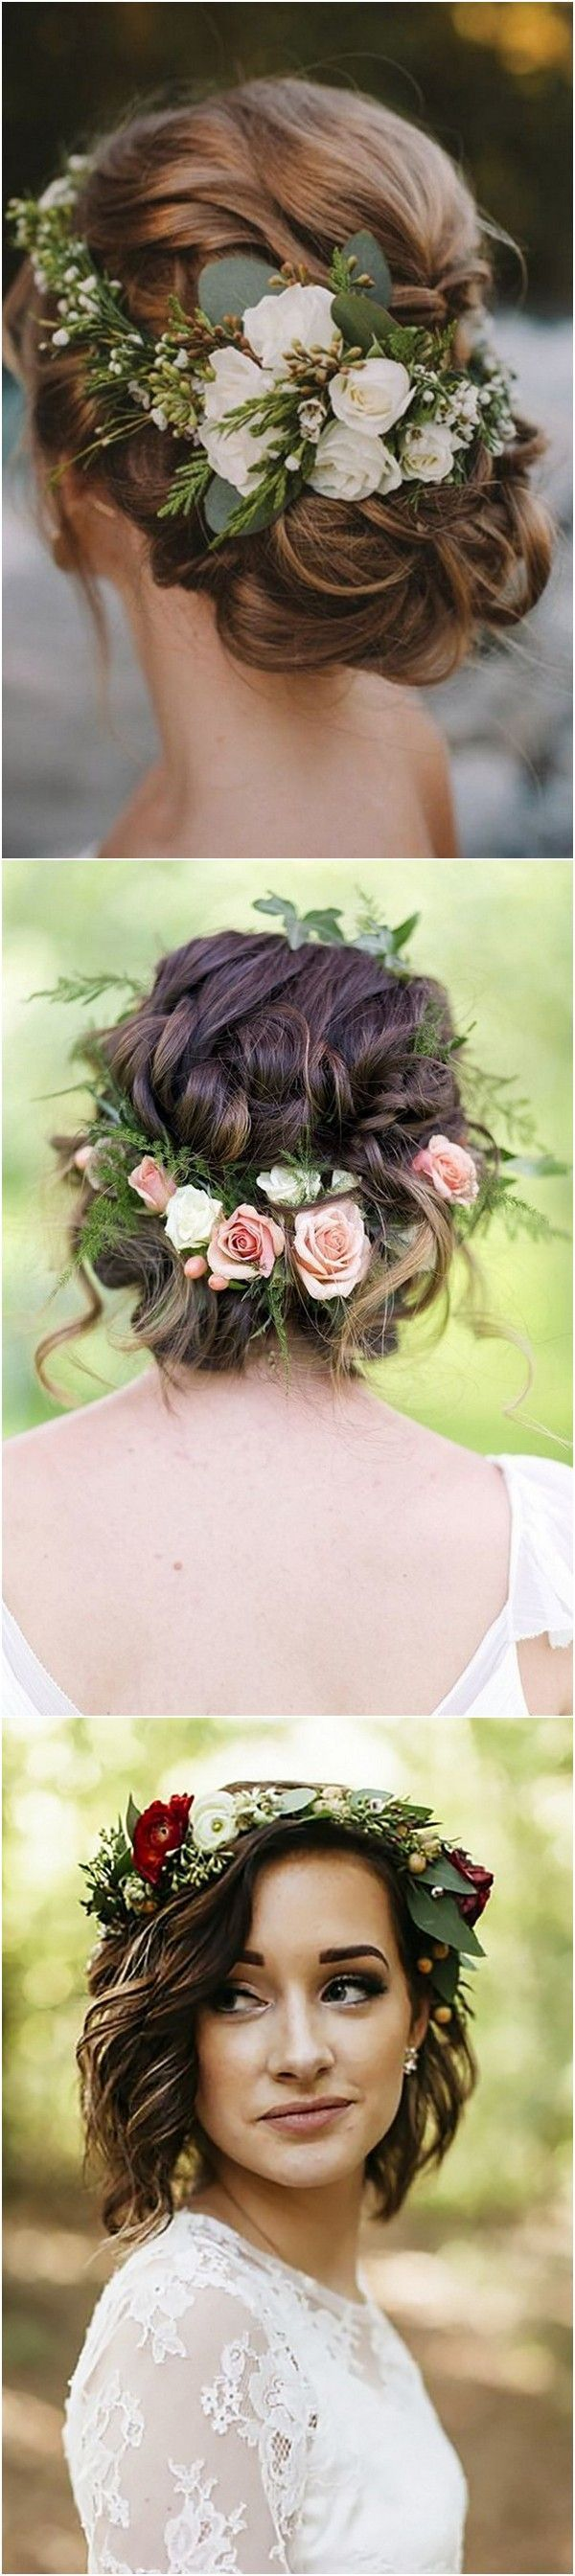 Wedding hairstyle ideas with flower crown #wedding #weddinghairstyles #weddingideas